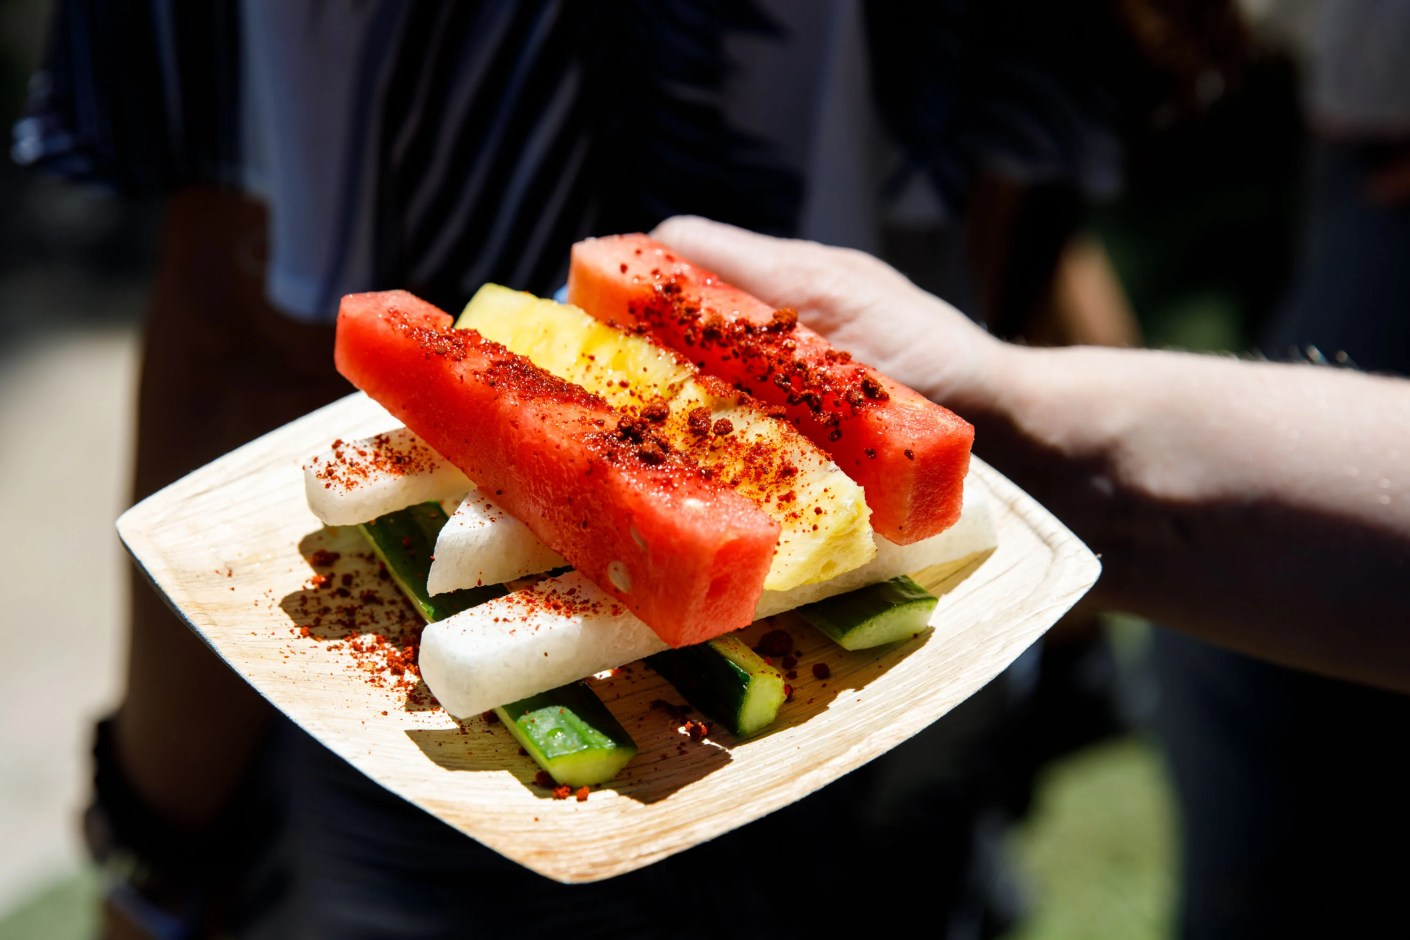 Delicious fresh cut fruit with chili and lime. (Photo by Patrick T. Fallon/The Points Guy)